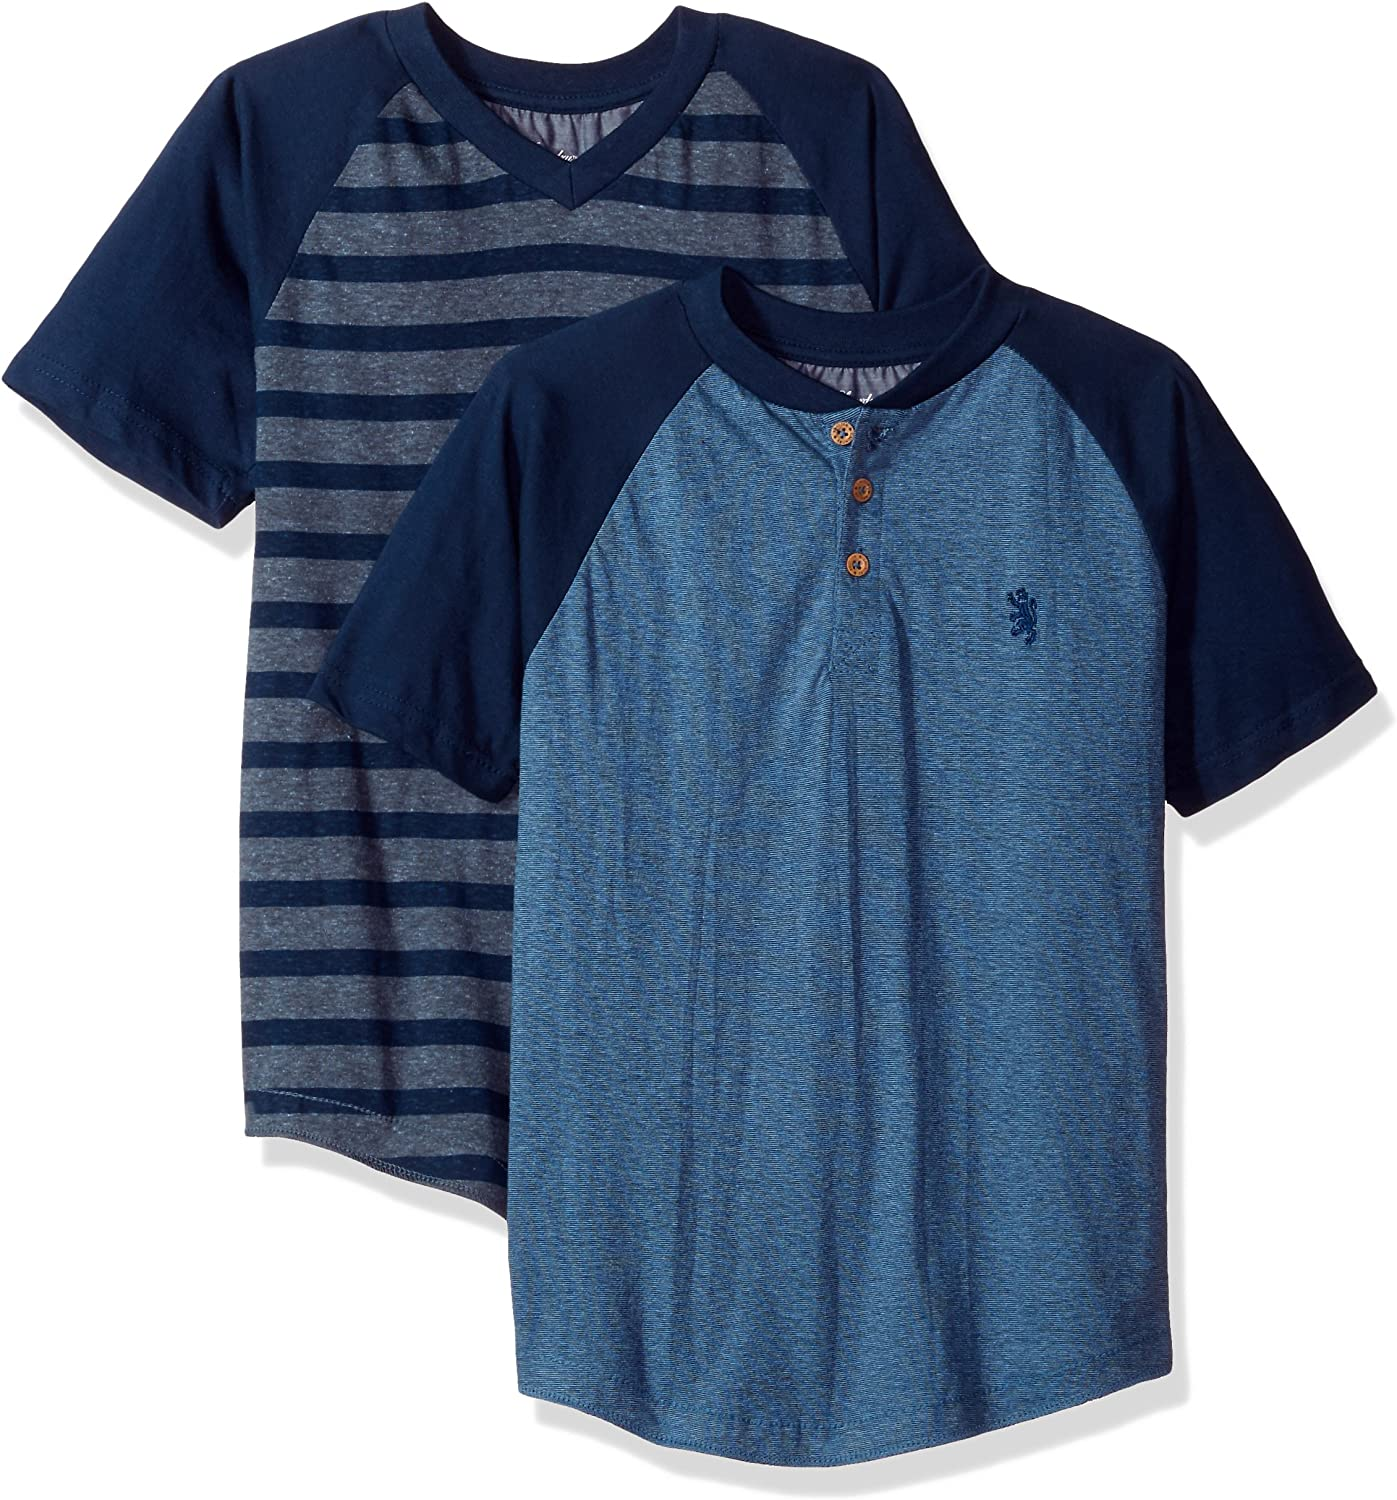 English Laundry Boys' 2 Pack T-Shirt (More Styles Available)